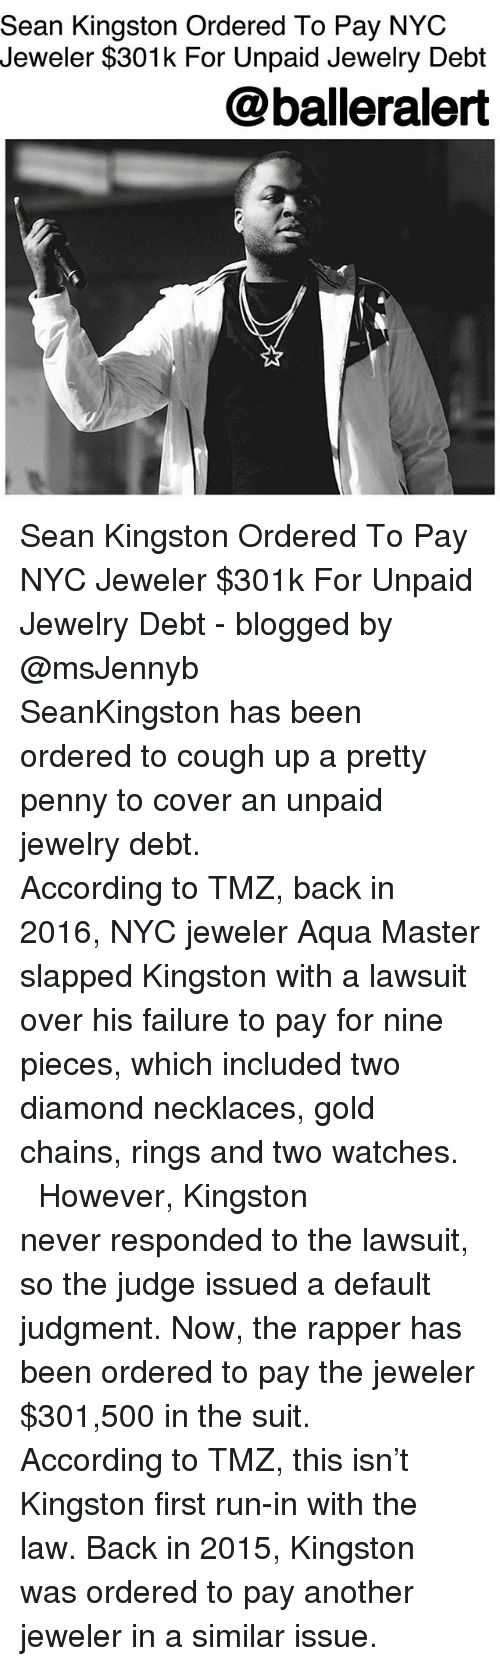 Memes, Run, and Diamond: Sean Kingston Ordered To Pay NYC  Jeweler $301k For Unpaid Jewelry Debt  @balleralert Sean Kingston Ordered To Pay NYC Jeweler $301k For Unpaid Jewelry Debt - blogged by @msJennyb ⠀⠀⠀⠀⠀⠀⠀ ⠀⠀⠀⠀⠀⠀⠀ SeanKingston has been ordered to cough up a pretty penny to cover an unpaid jewelry debt. ⠀⠀⠀⠀⠀⠀⠀ ⠀⠀⠀⠀⠀⠀⠀ According to TMZ, back in 2016, NYC jeweler Aqua Master slapped Kingston with a lawsuit over his failure to pay for nine pieces, which included two diamond necklaces, gold chains, rings and two watches. ⠀⠀⠀⠀⠀⠀⠀ ⠀⠀⠀⠀⠀⠀⠀ However, Kingston never responded to the lawsuit, so the judge issued a default judgment. Now, the rapper has been ordered to pay the jeweler $301,500 in the suit. ⠀⠀⠀⠀⠀⠀⠀ ⠀⠀⠀⠀⠀⠀⠀ According to TMZ, this isn't Kingston first run-in with the law. Back in 2015, Kingston was ordered to pay another jeweler in a similar issue.